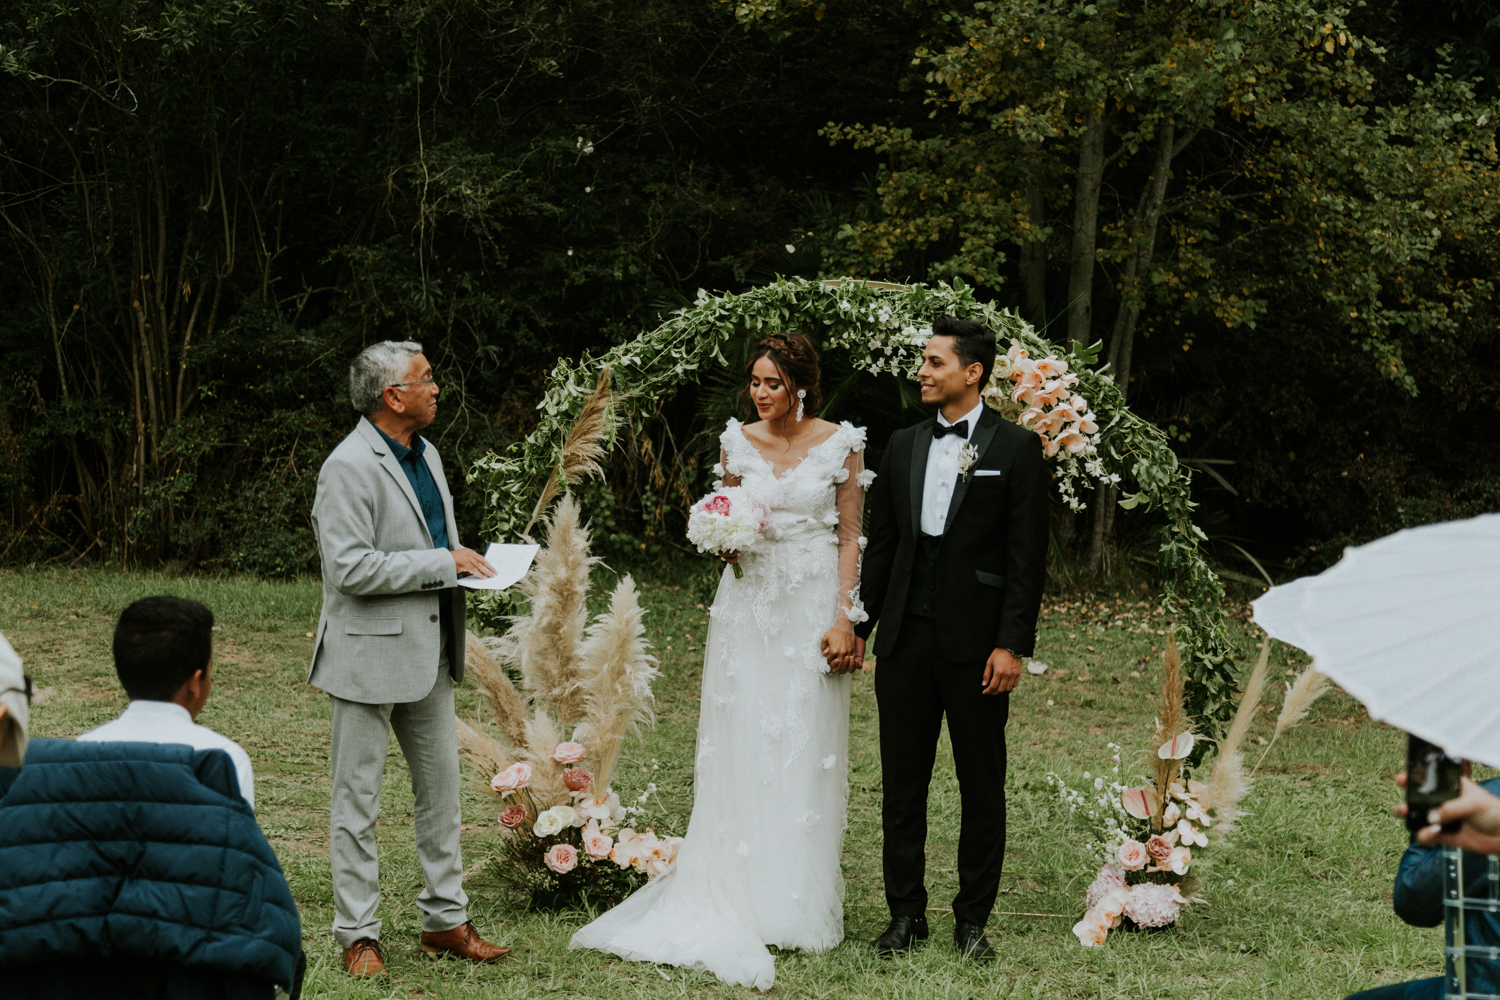 Forest Wedding Cape Town - Bianca Asher Photography-22.jpg